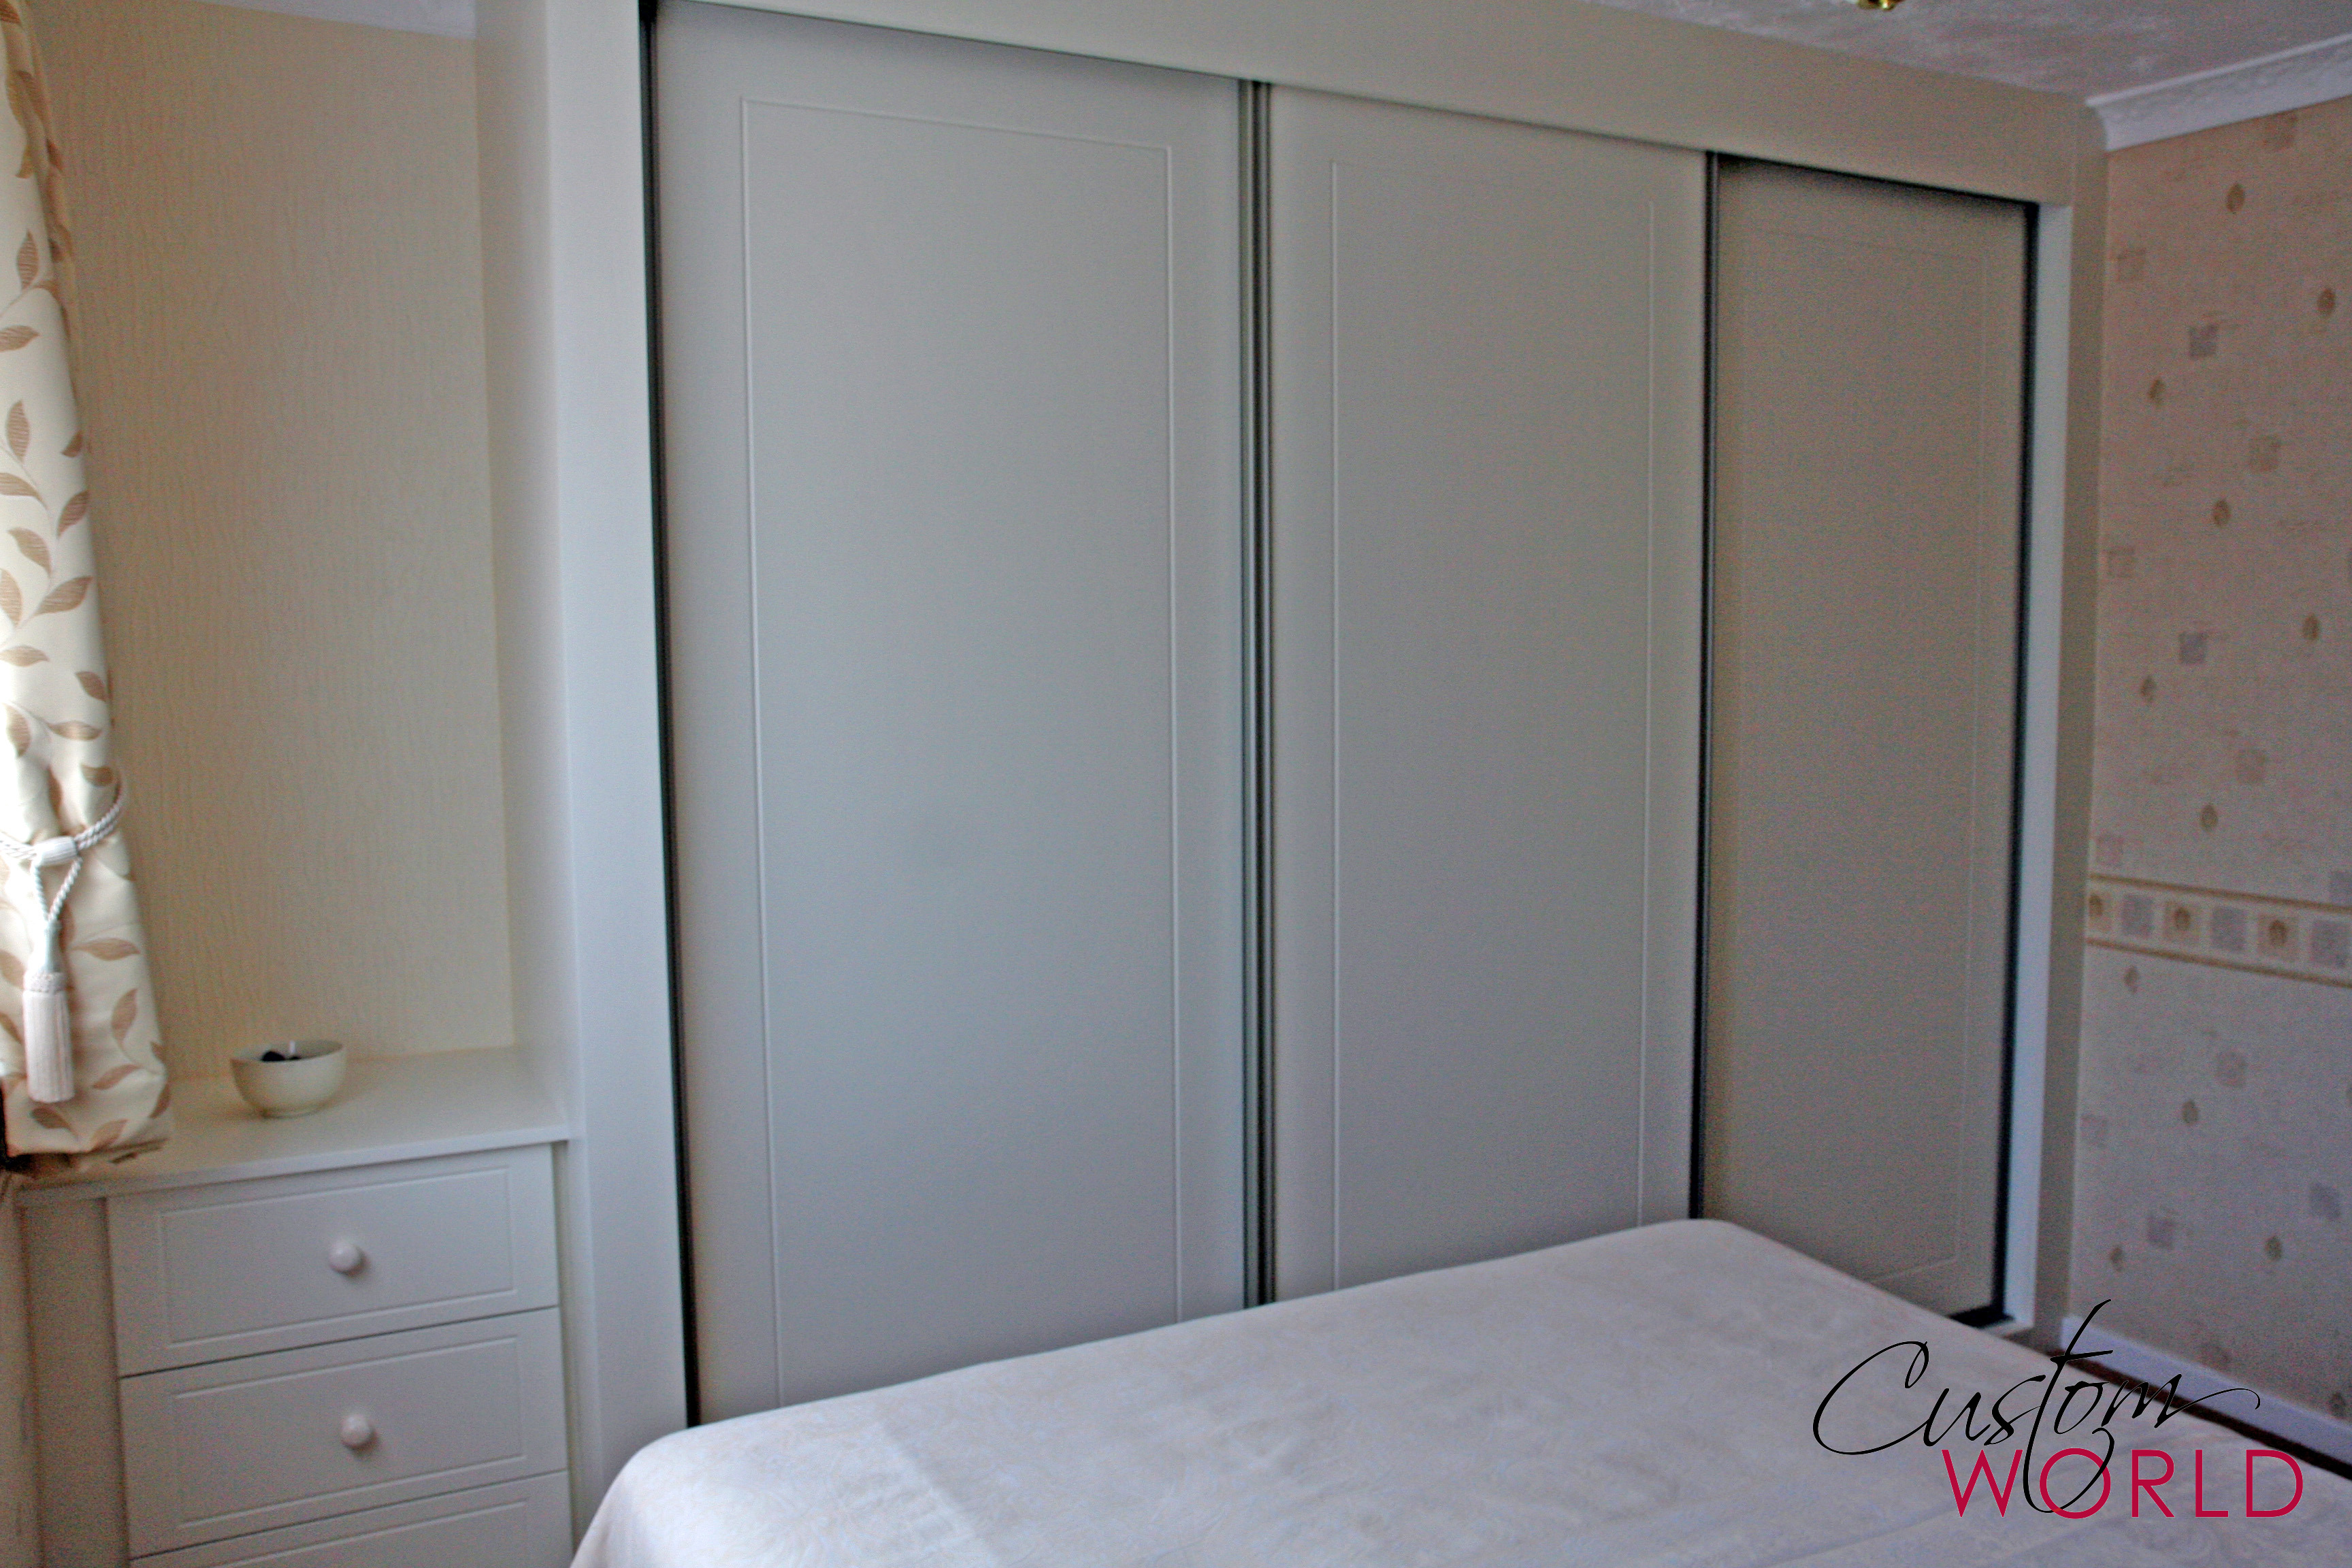 3 door sliding wardrobe with white frame and doors